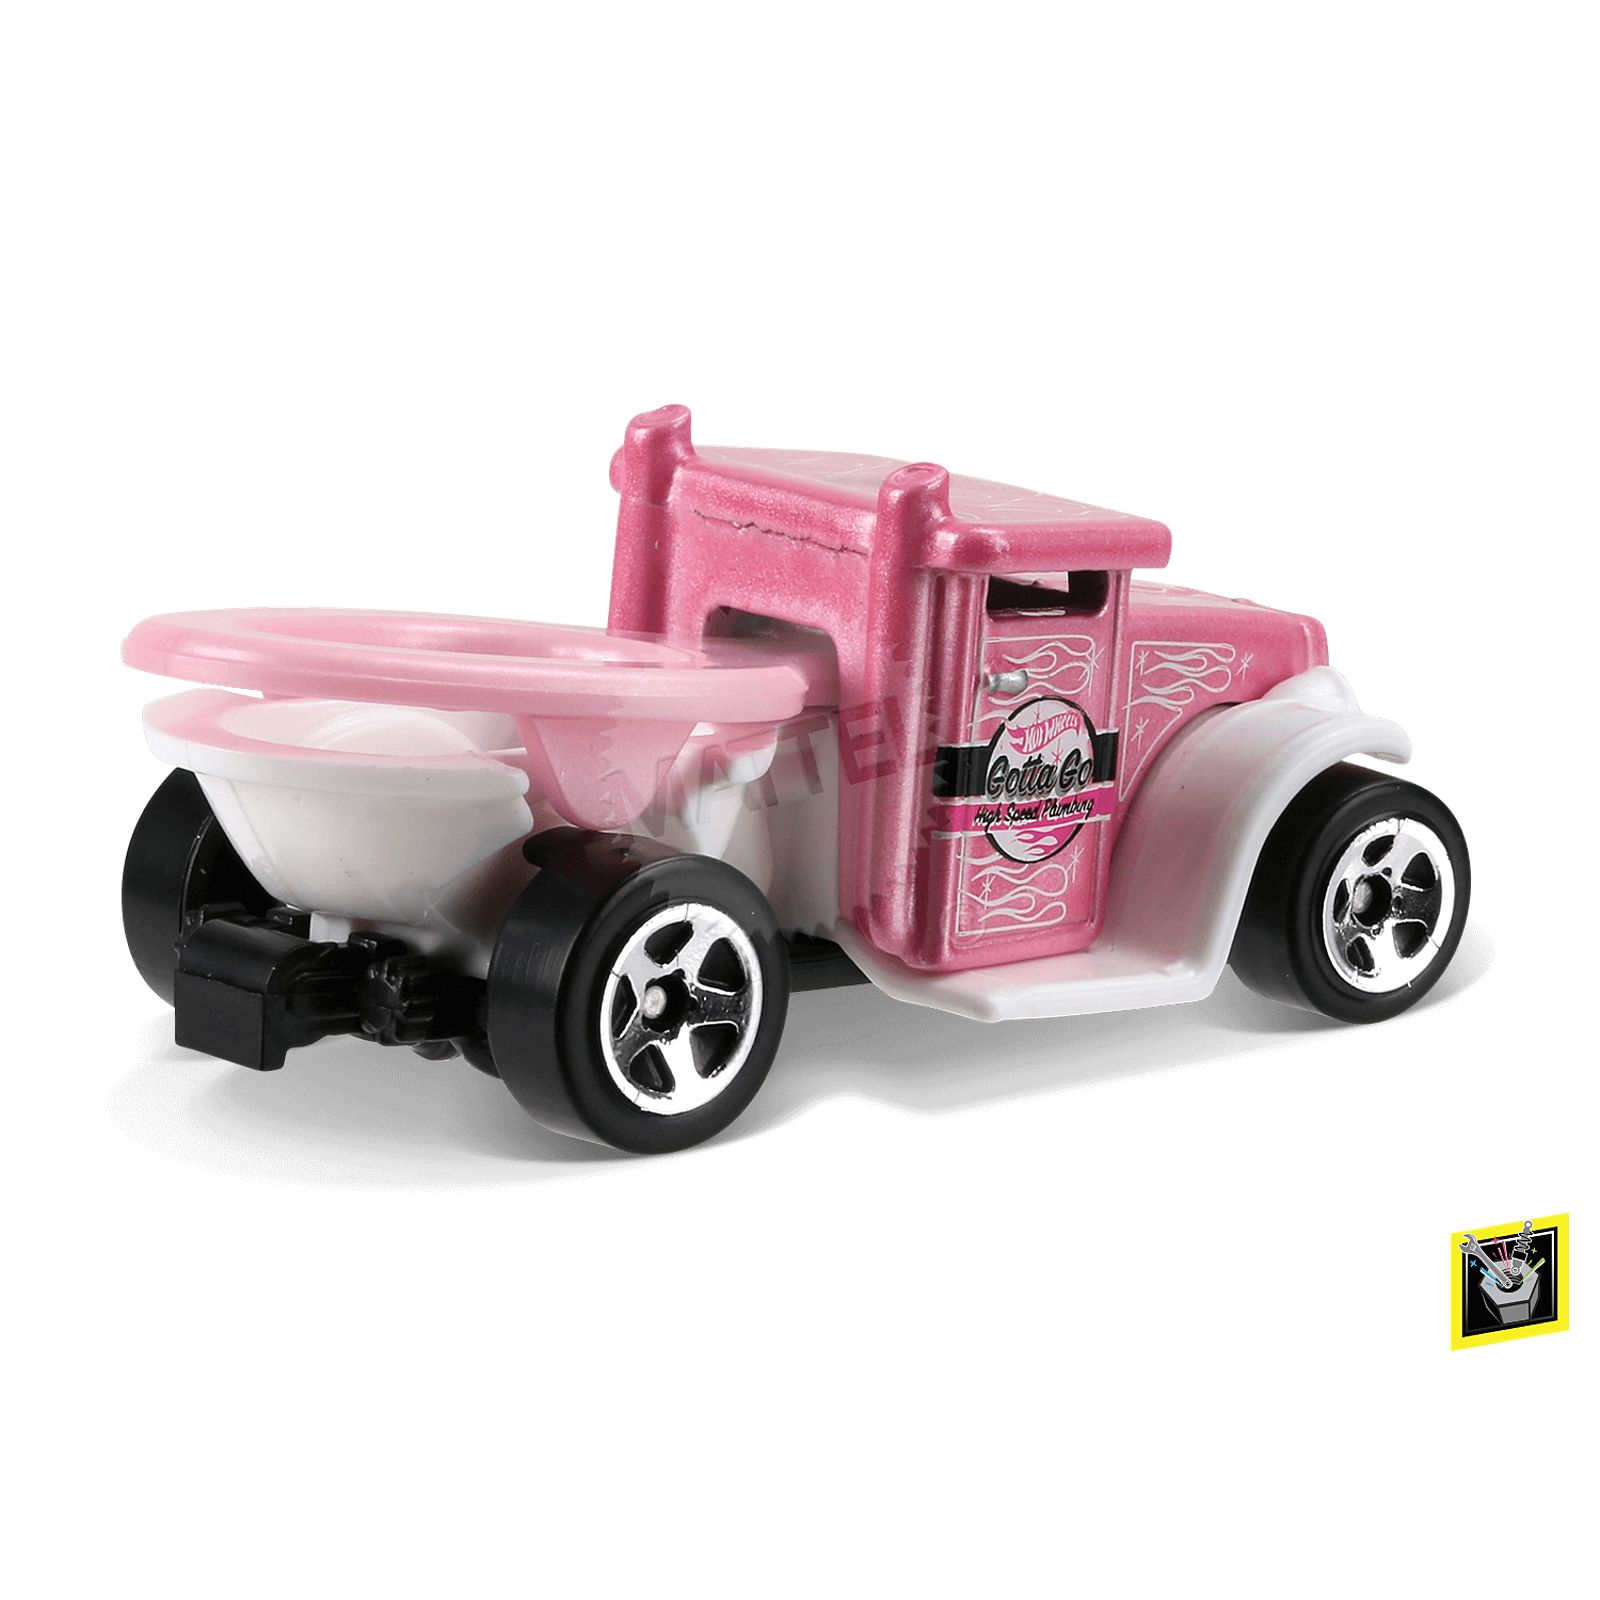 new from hot wheels a toilet car stormfront. Black Bedroom Furniture Sets. Home Design Ideas